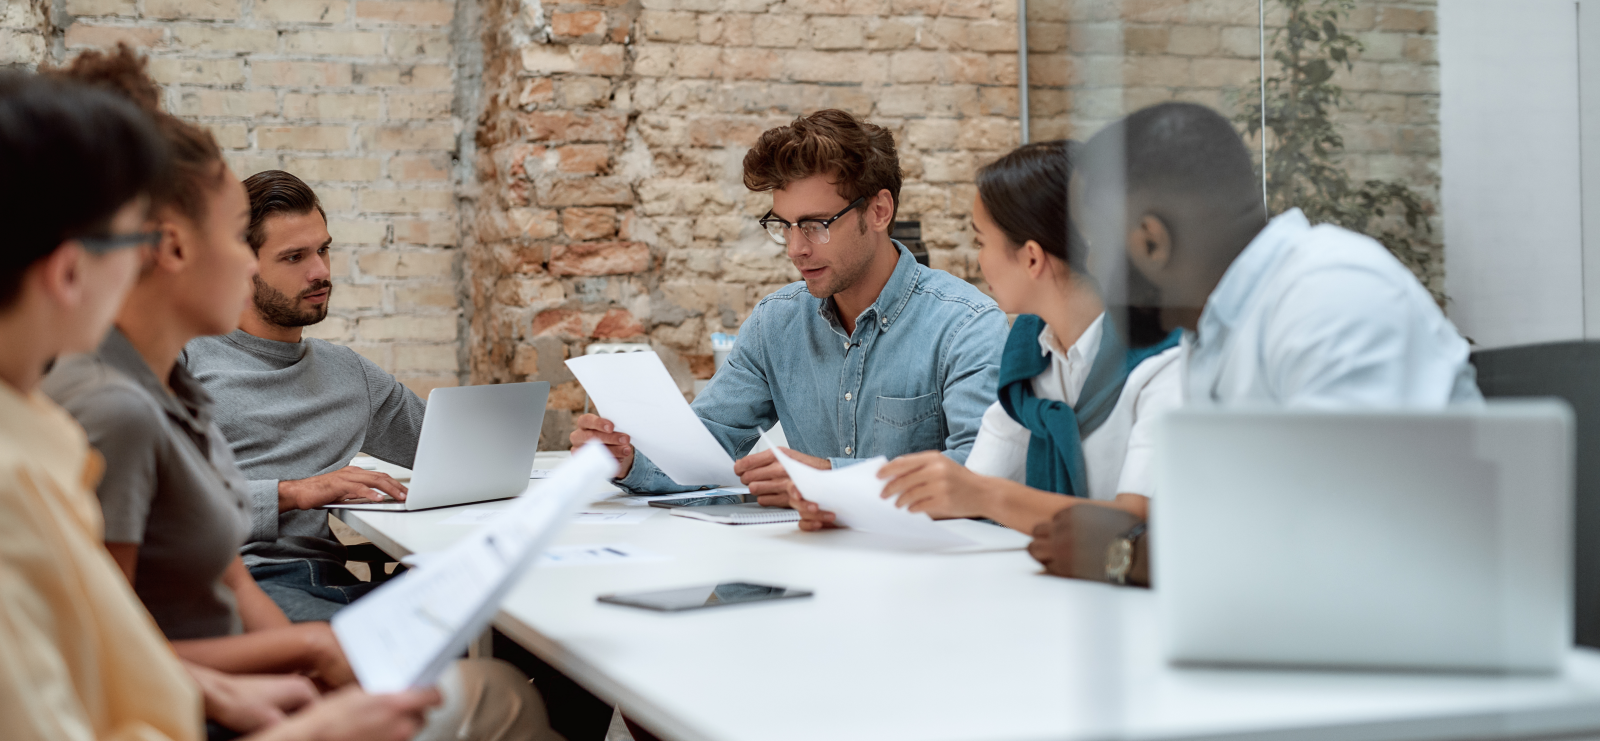 DON'T LET THESE 5 MYTHS ABOUT CANDIDATE ASSESSMENT HOLD YOU BACK